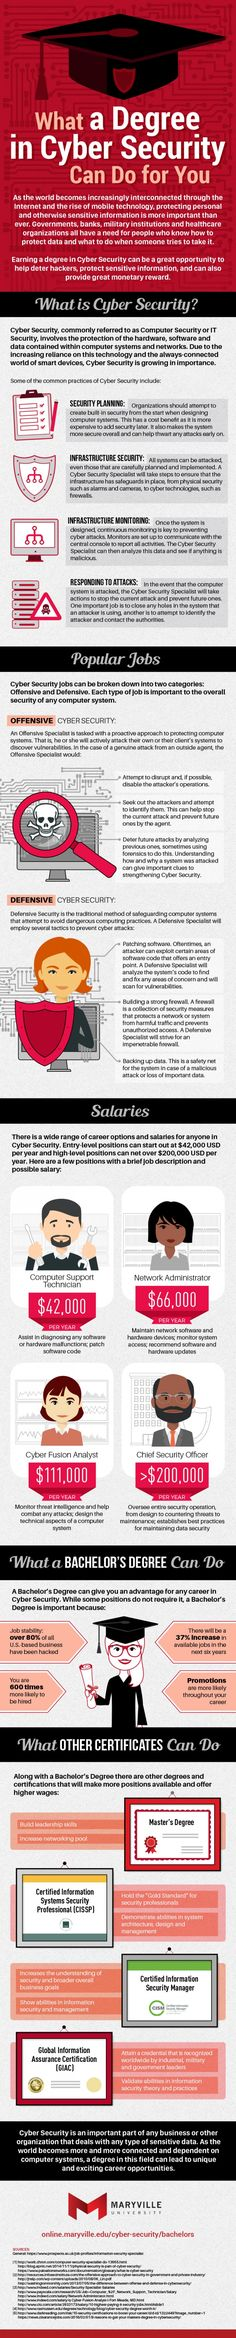 Infographic: What a Degree in Cyber Security can do for you #Infographics